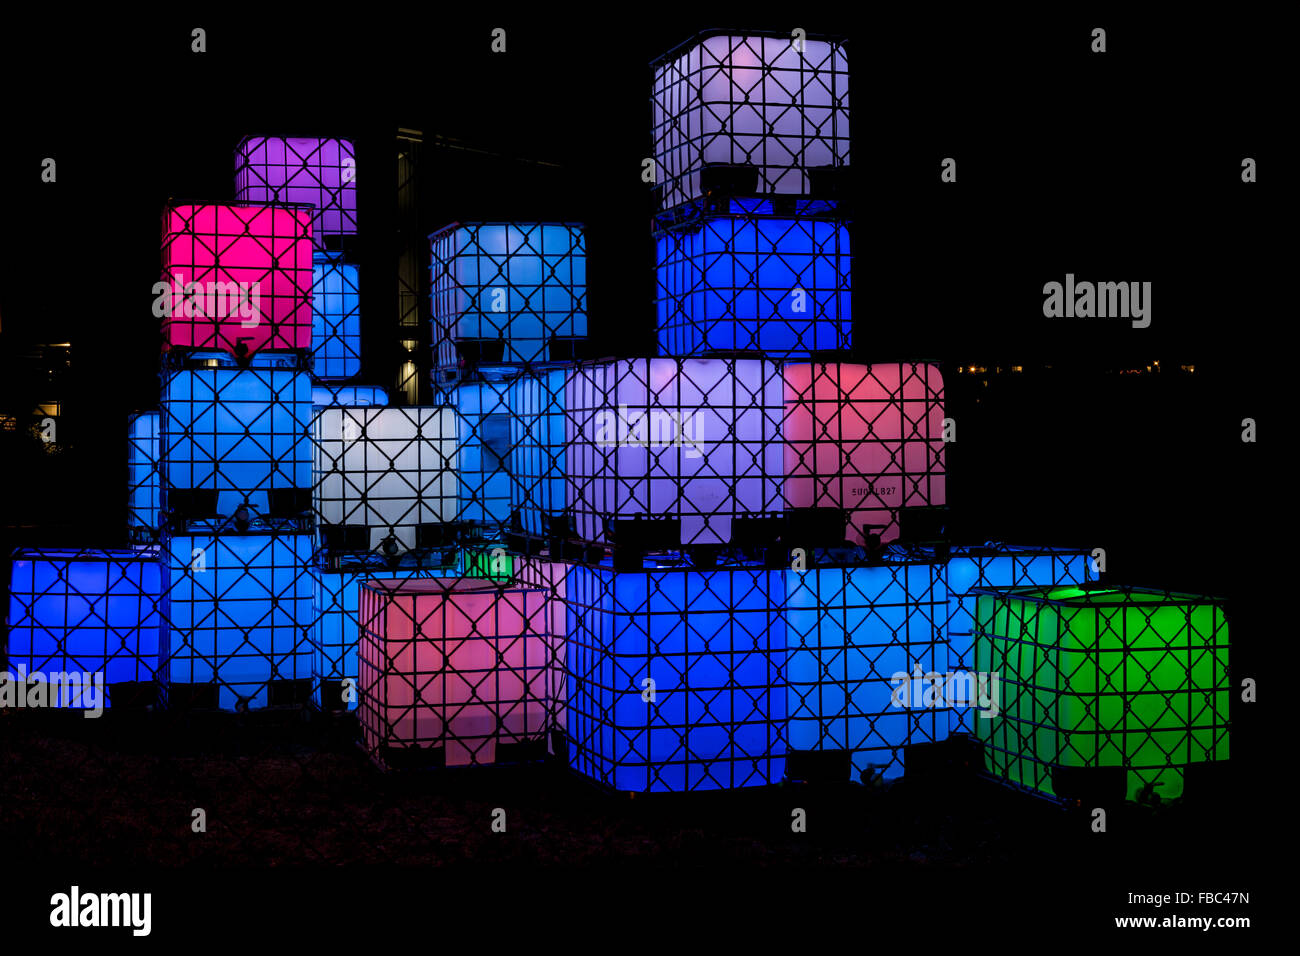 Art display LED cube lights at night-Victoria, British Columbia, Canada. - Stock Image